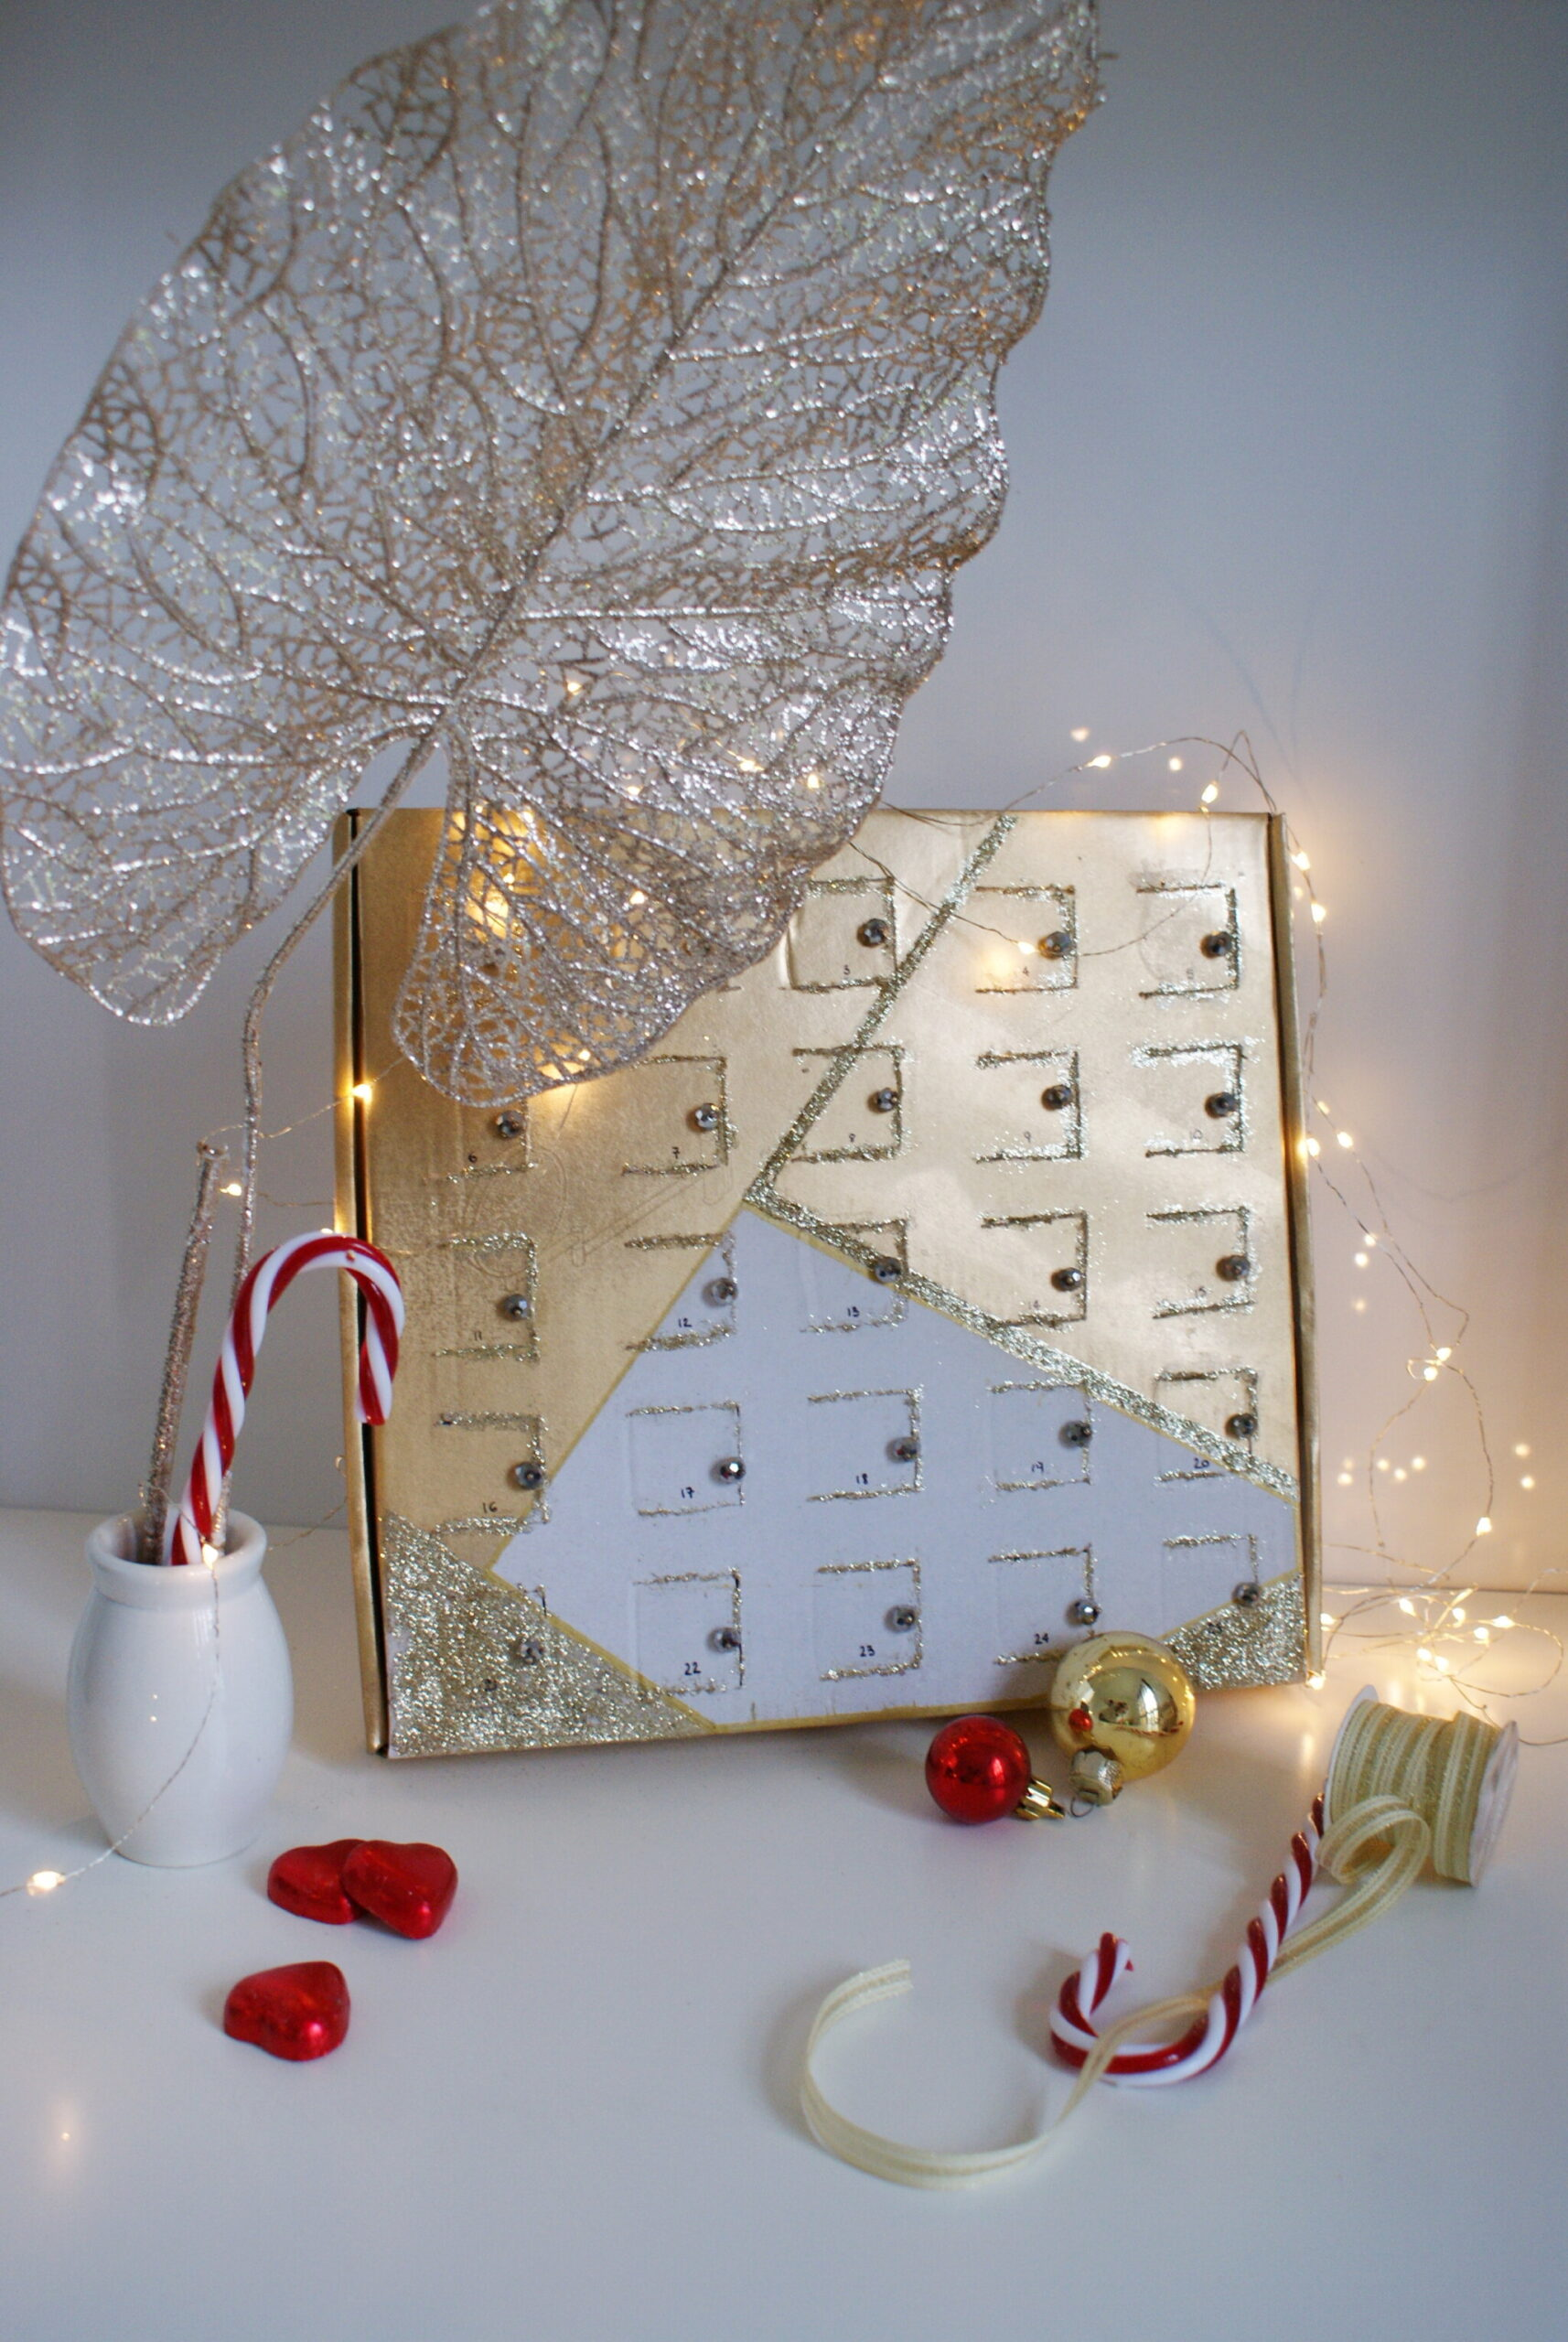 diy advent calendar chocolate box easy genius idea last minute handmade minimalist